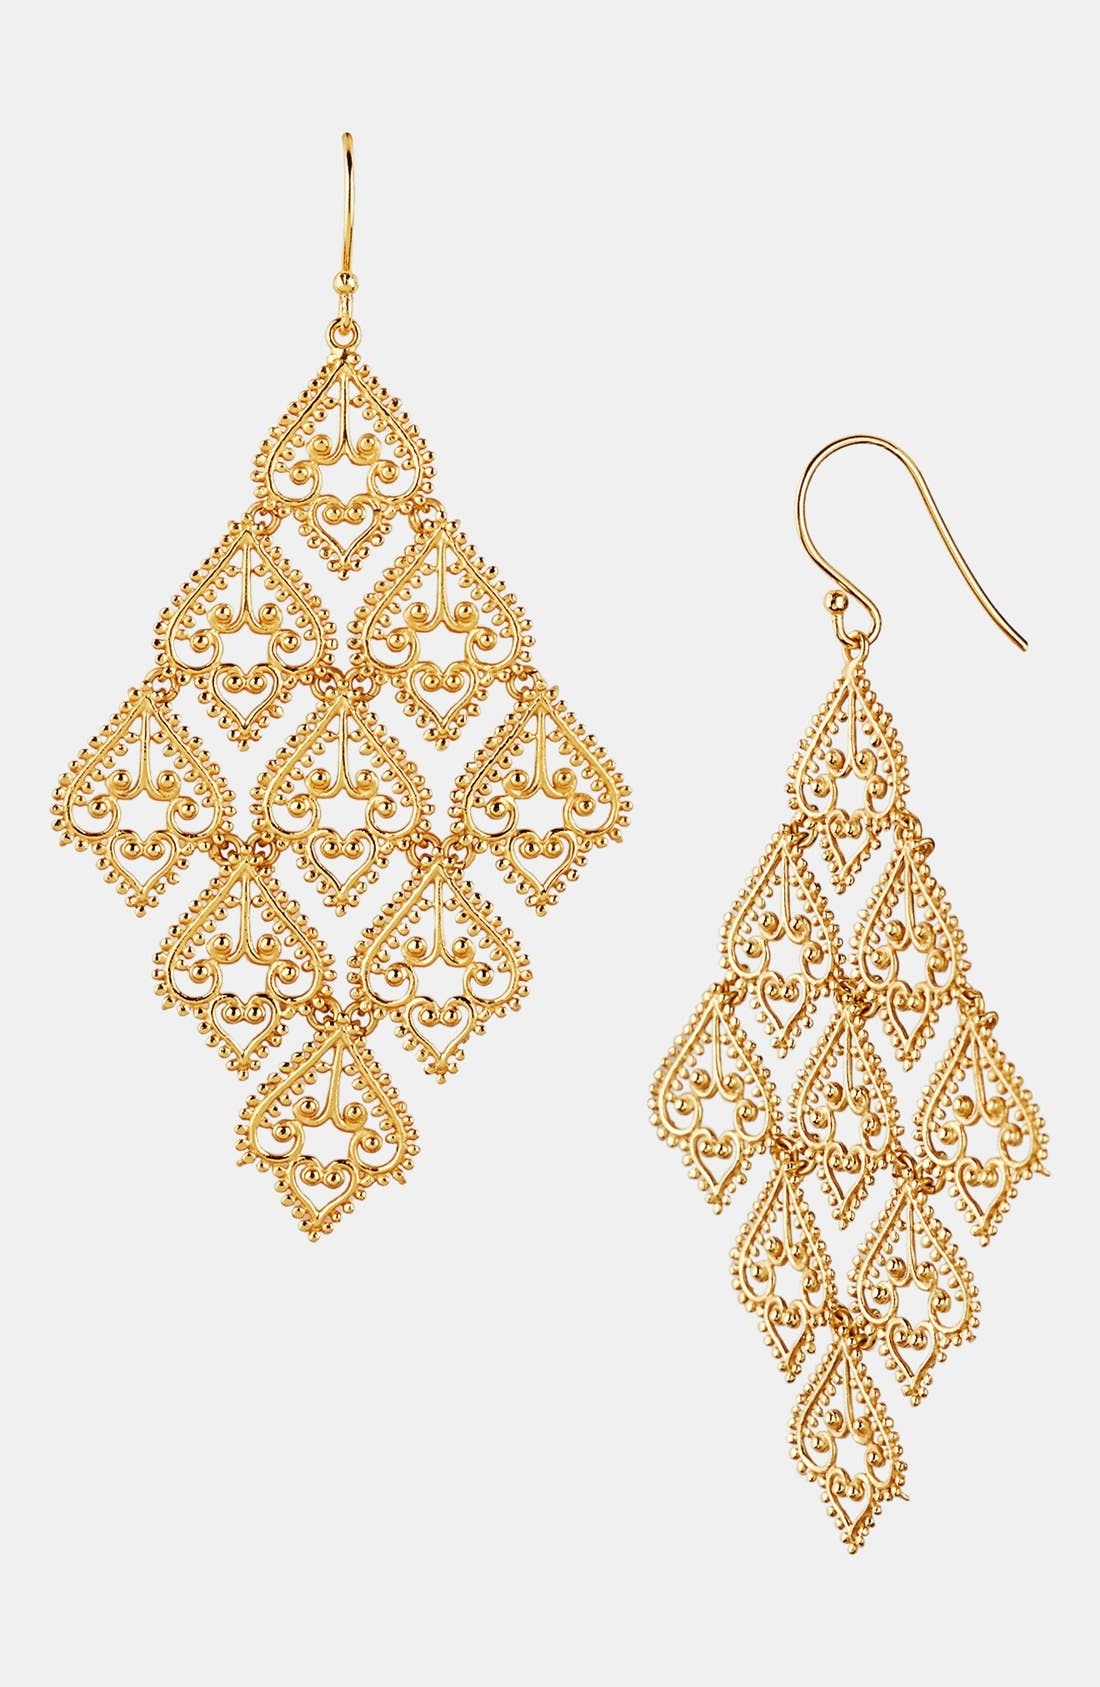 Alternate Image 1 Selected - Argento Vivo Large Chandelier Earrings